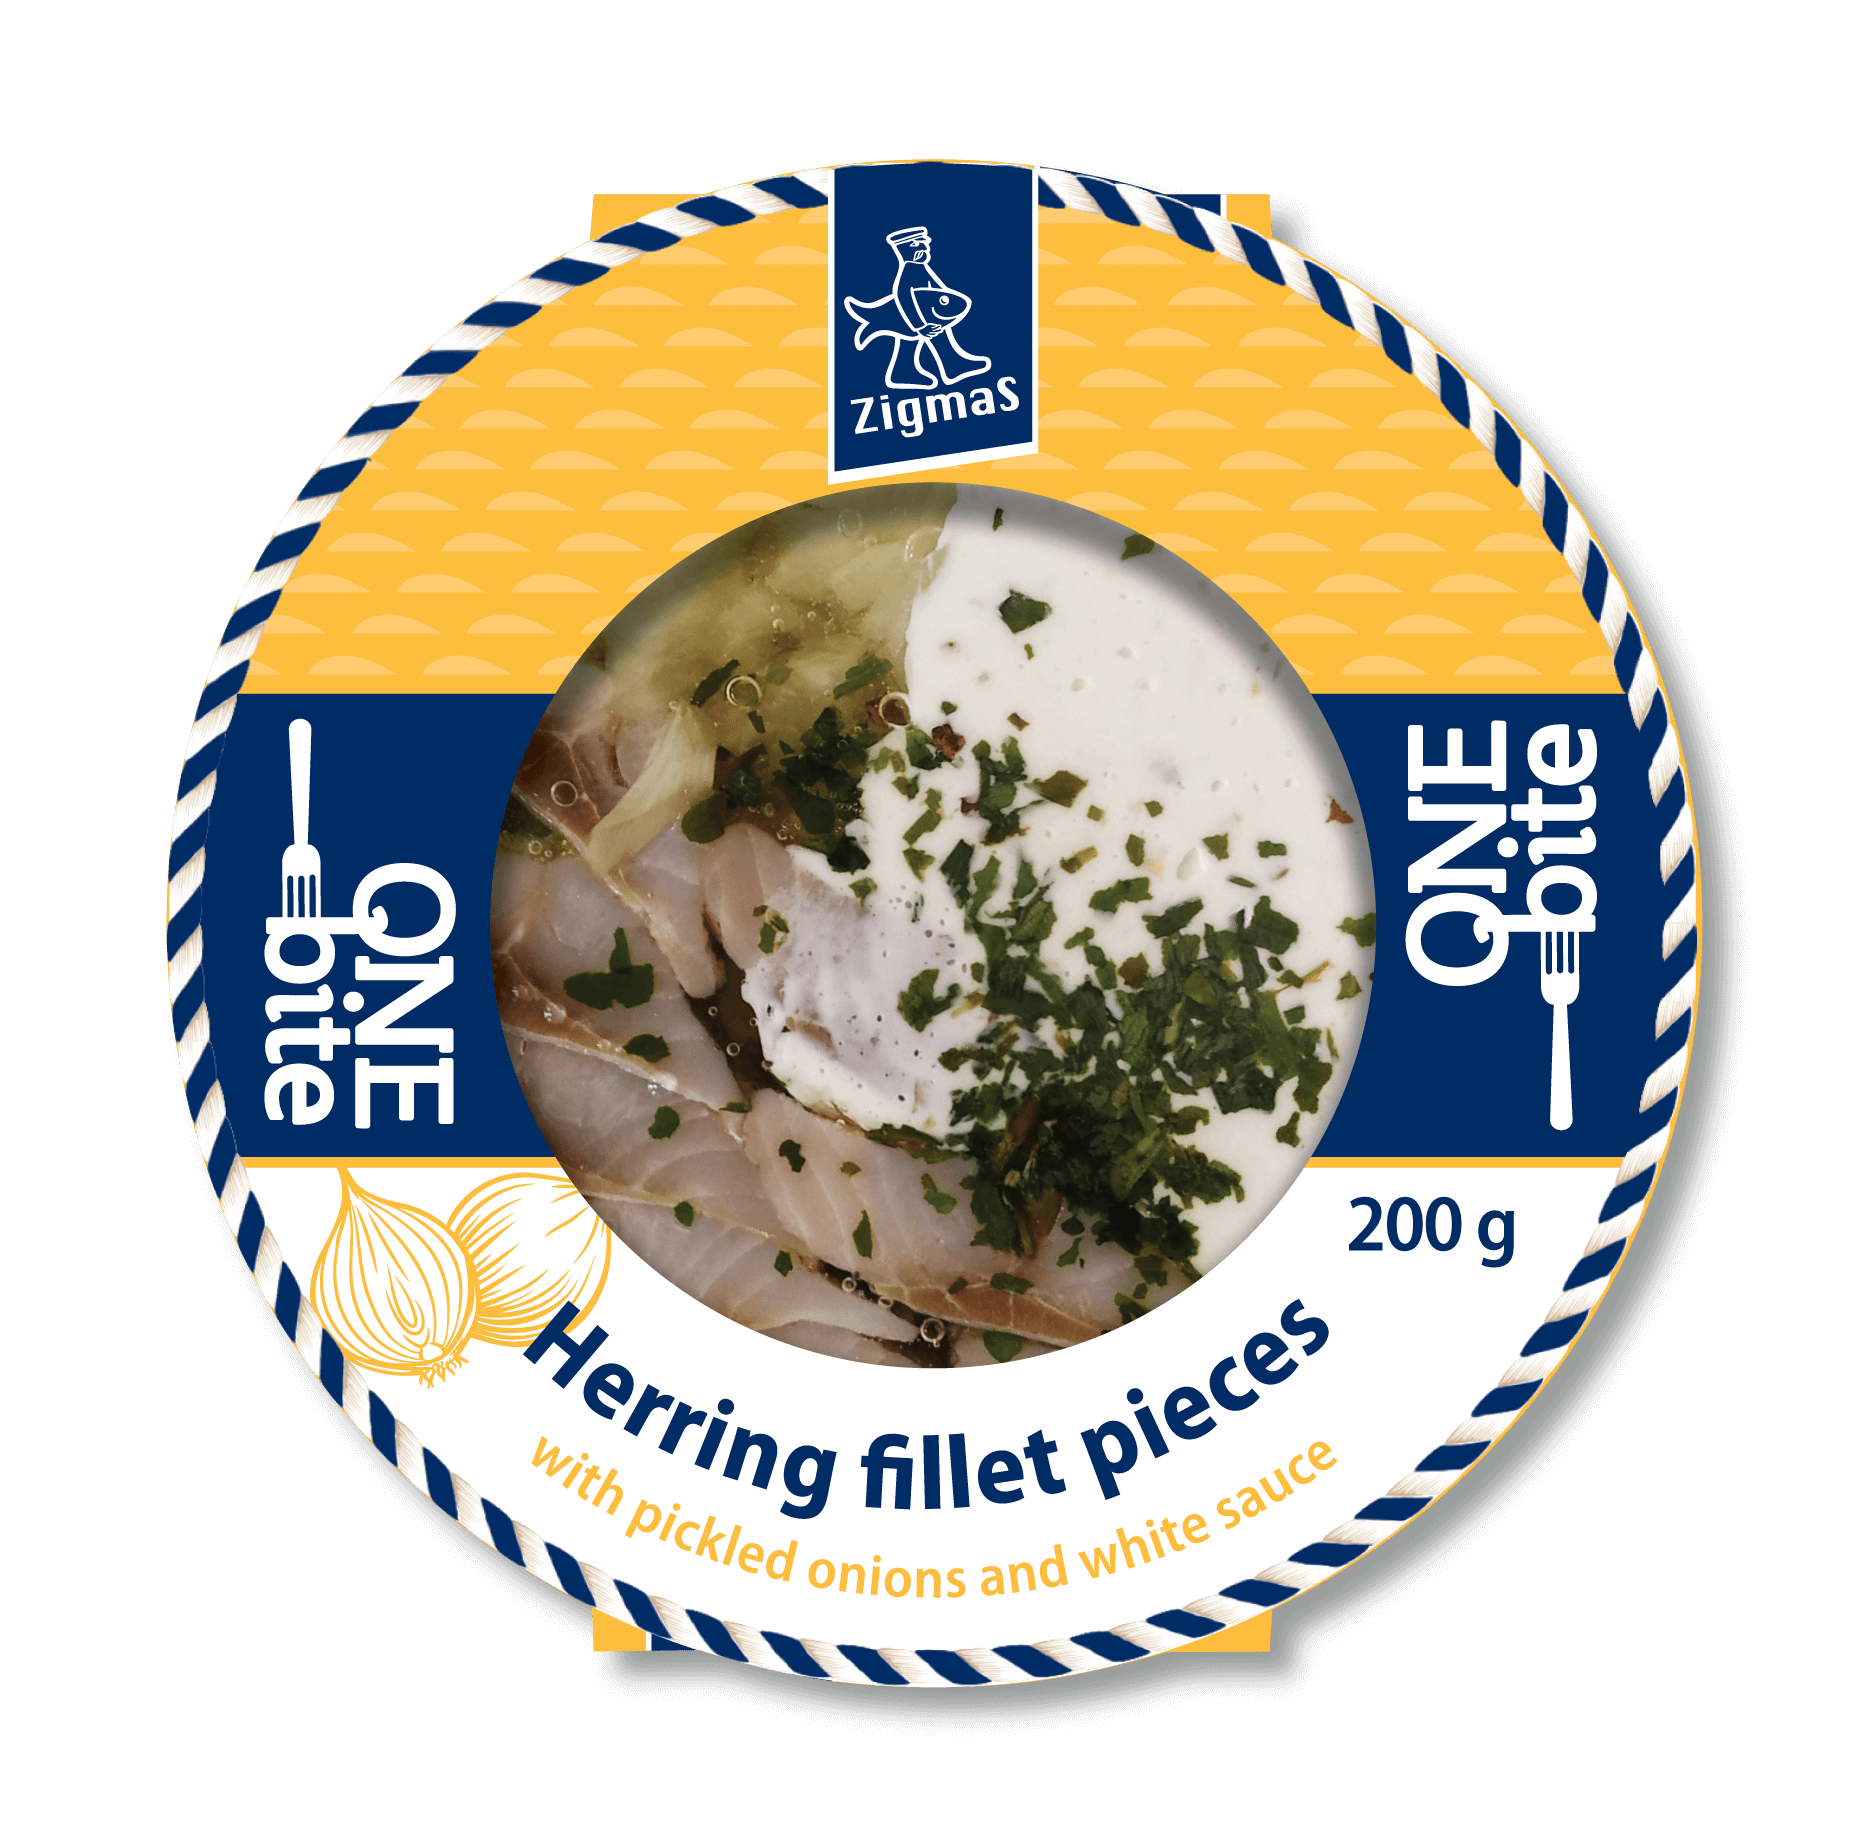 Herring fillets pieces with pickled onions and white sauce